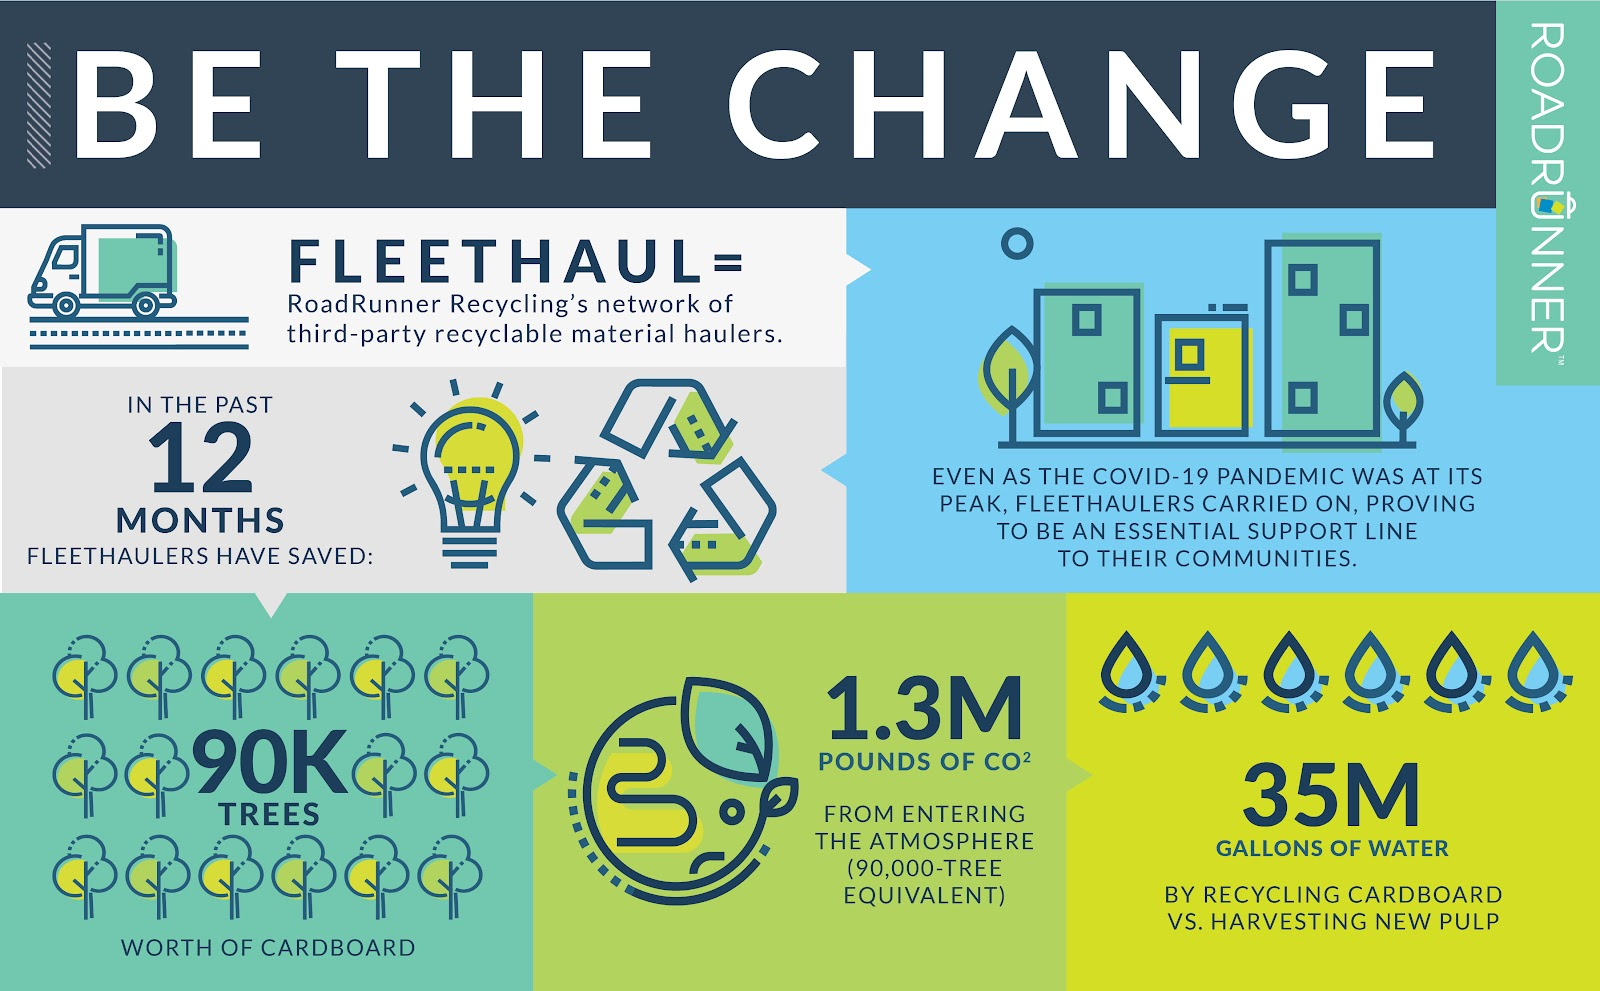 Infographic recognizing the impact of RoadRunner Recycling's FleetHaul service, depicting trees, the earth, and drops of water.